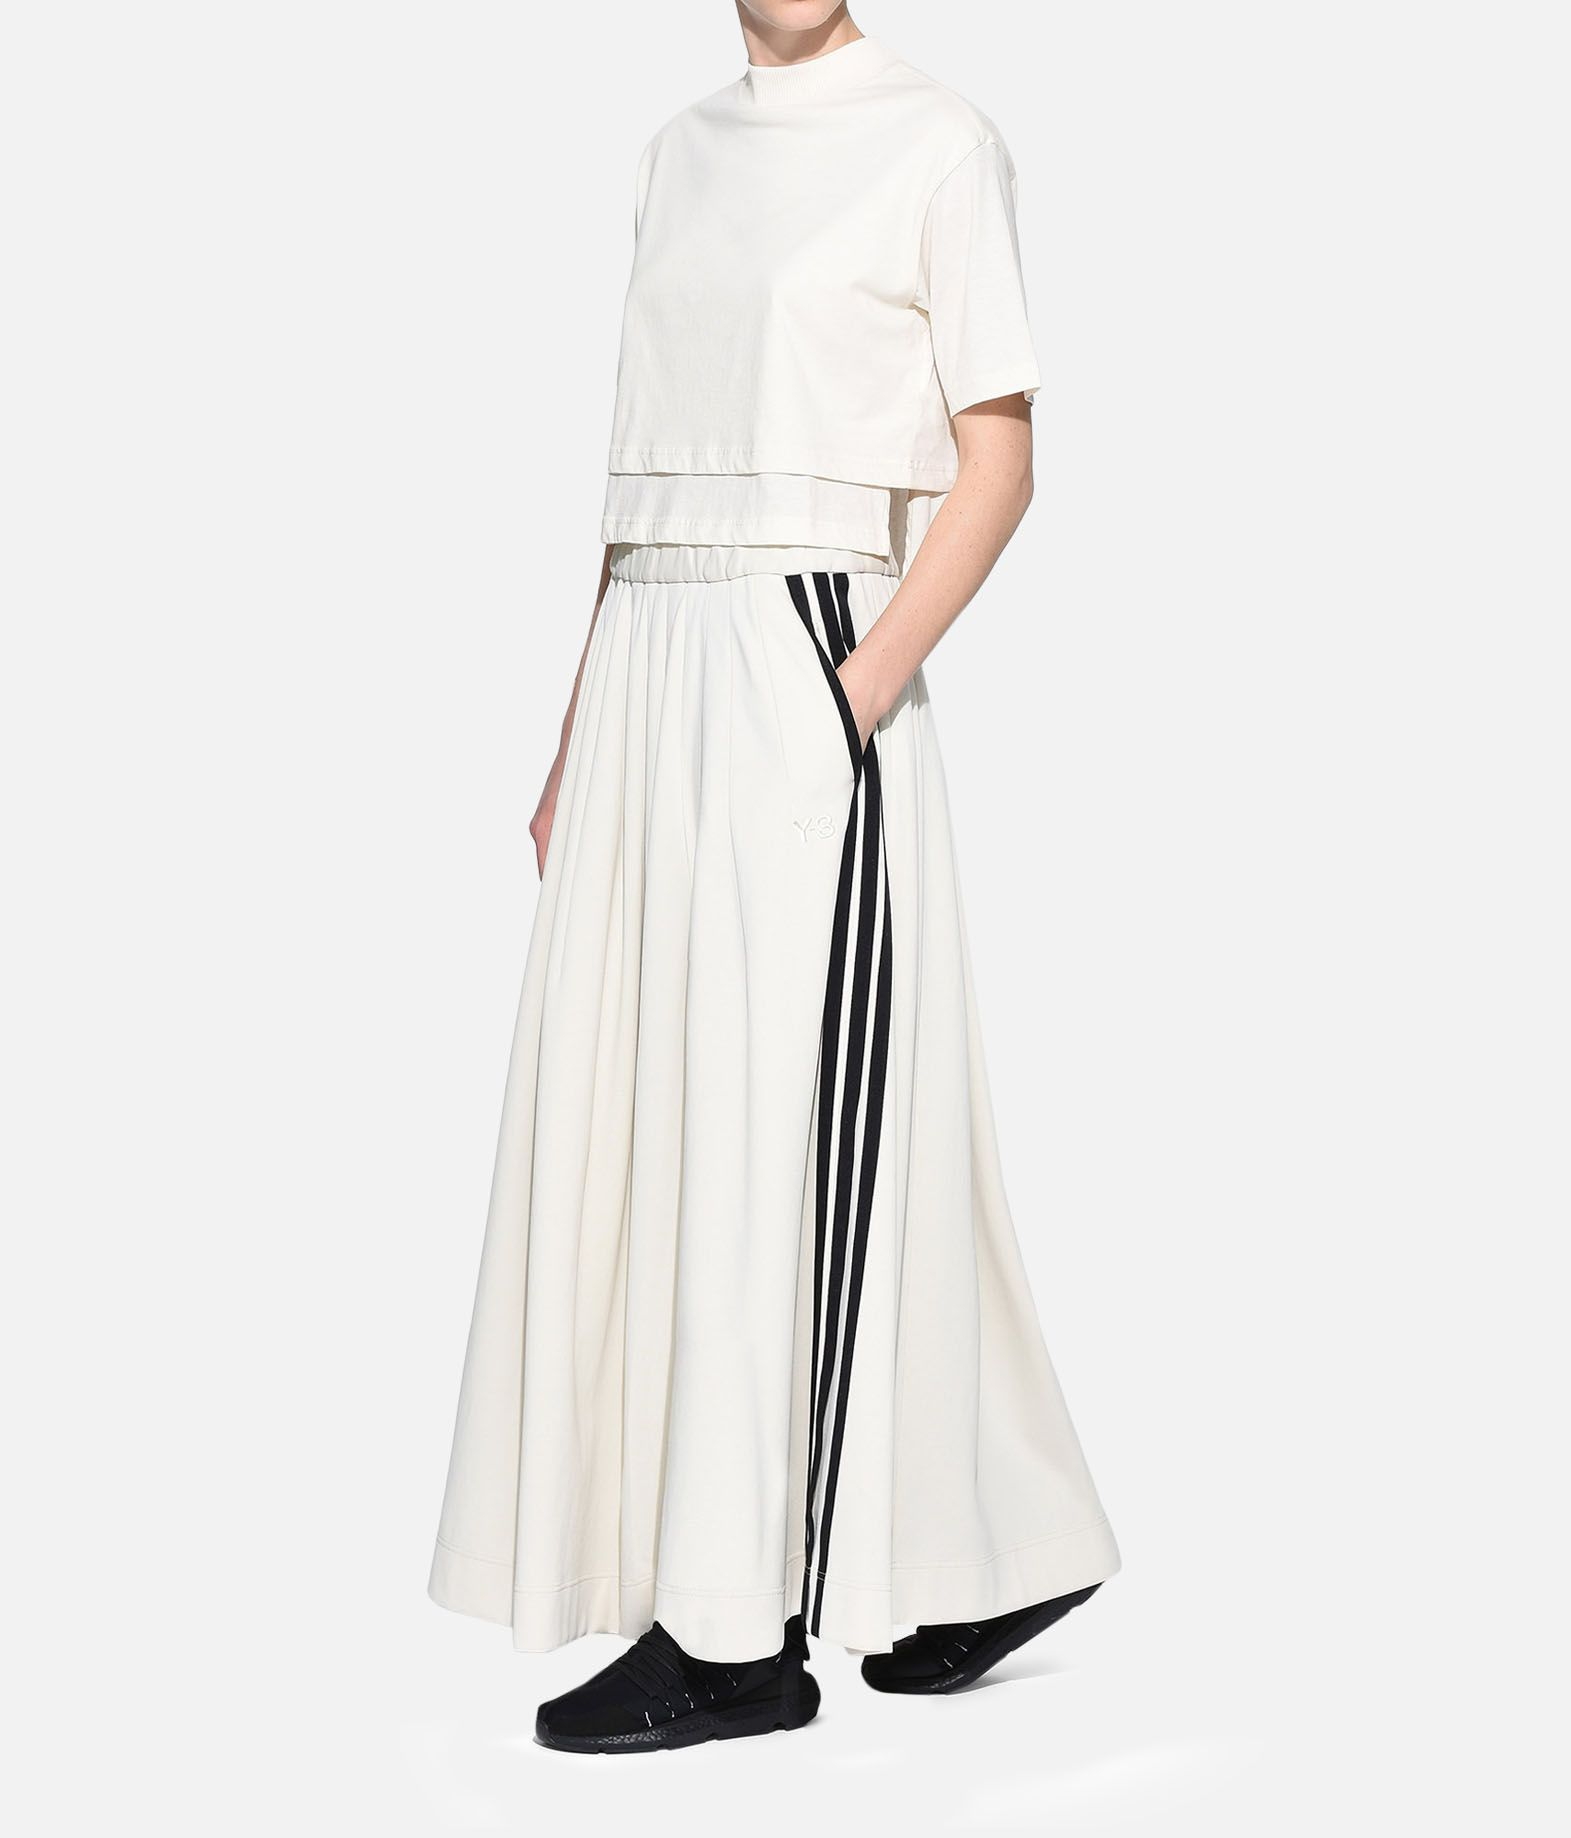 Y-3 Y-3 3-Stripes Selvedge Matte Track Skirt Gonna ginocchio Donna a